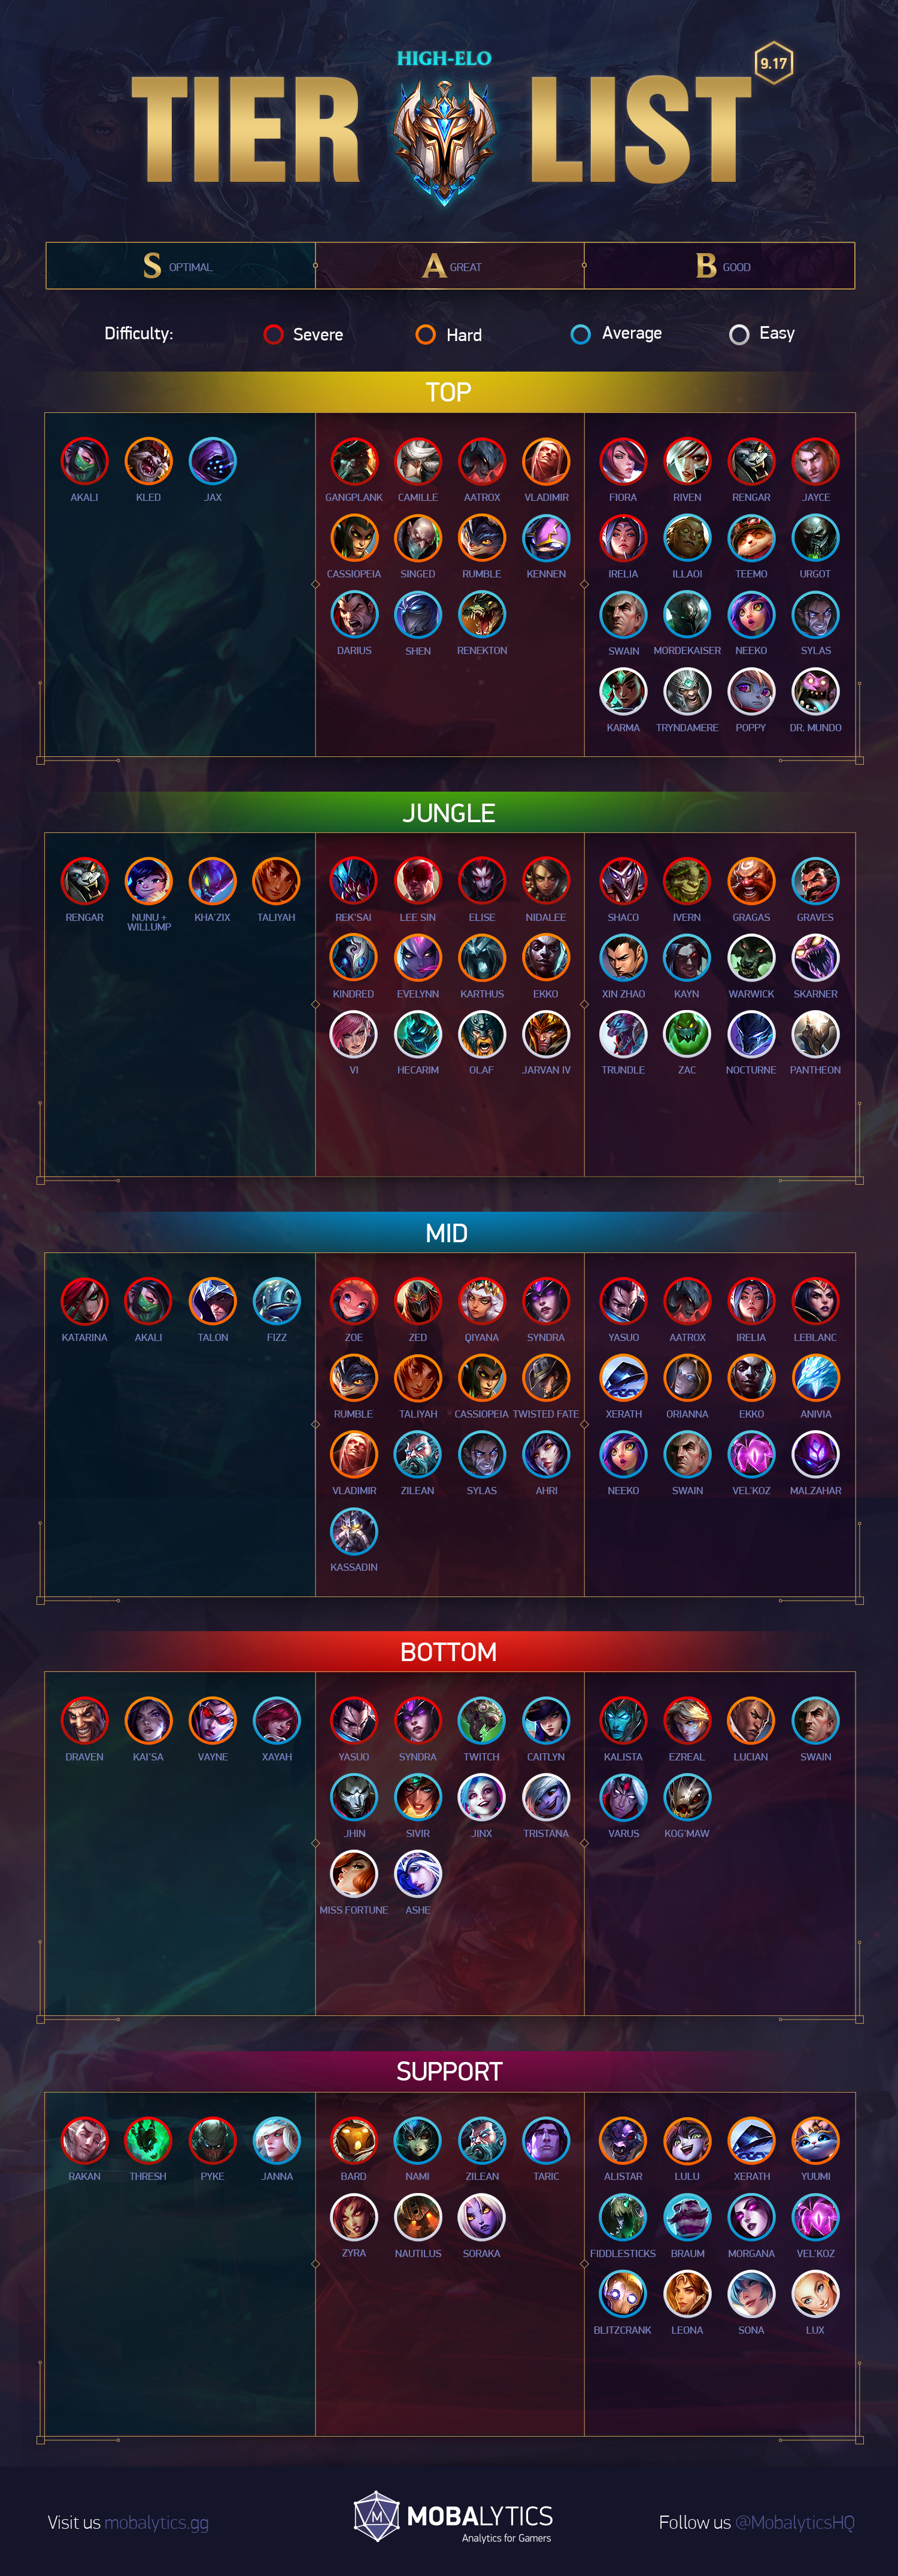 LoL Tier List [Patch 9 17] for Climbing Solo Queue - Mobalytics